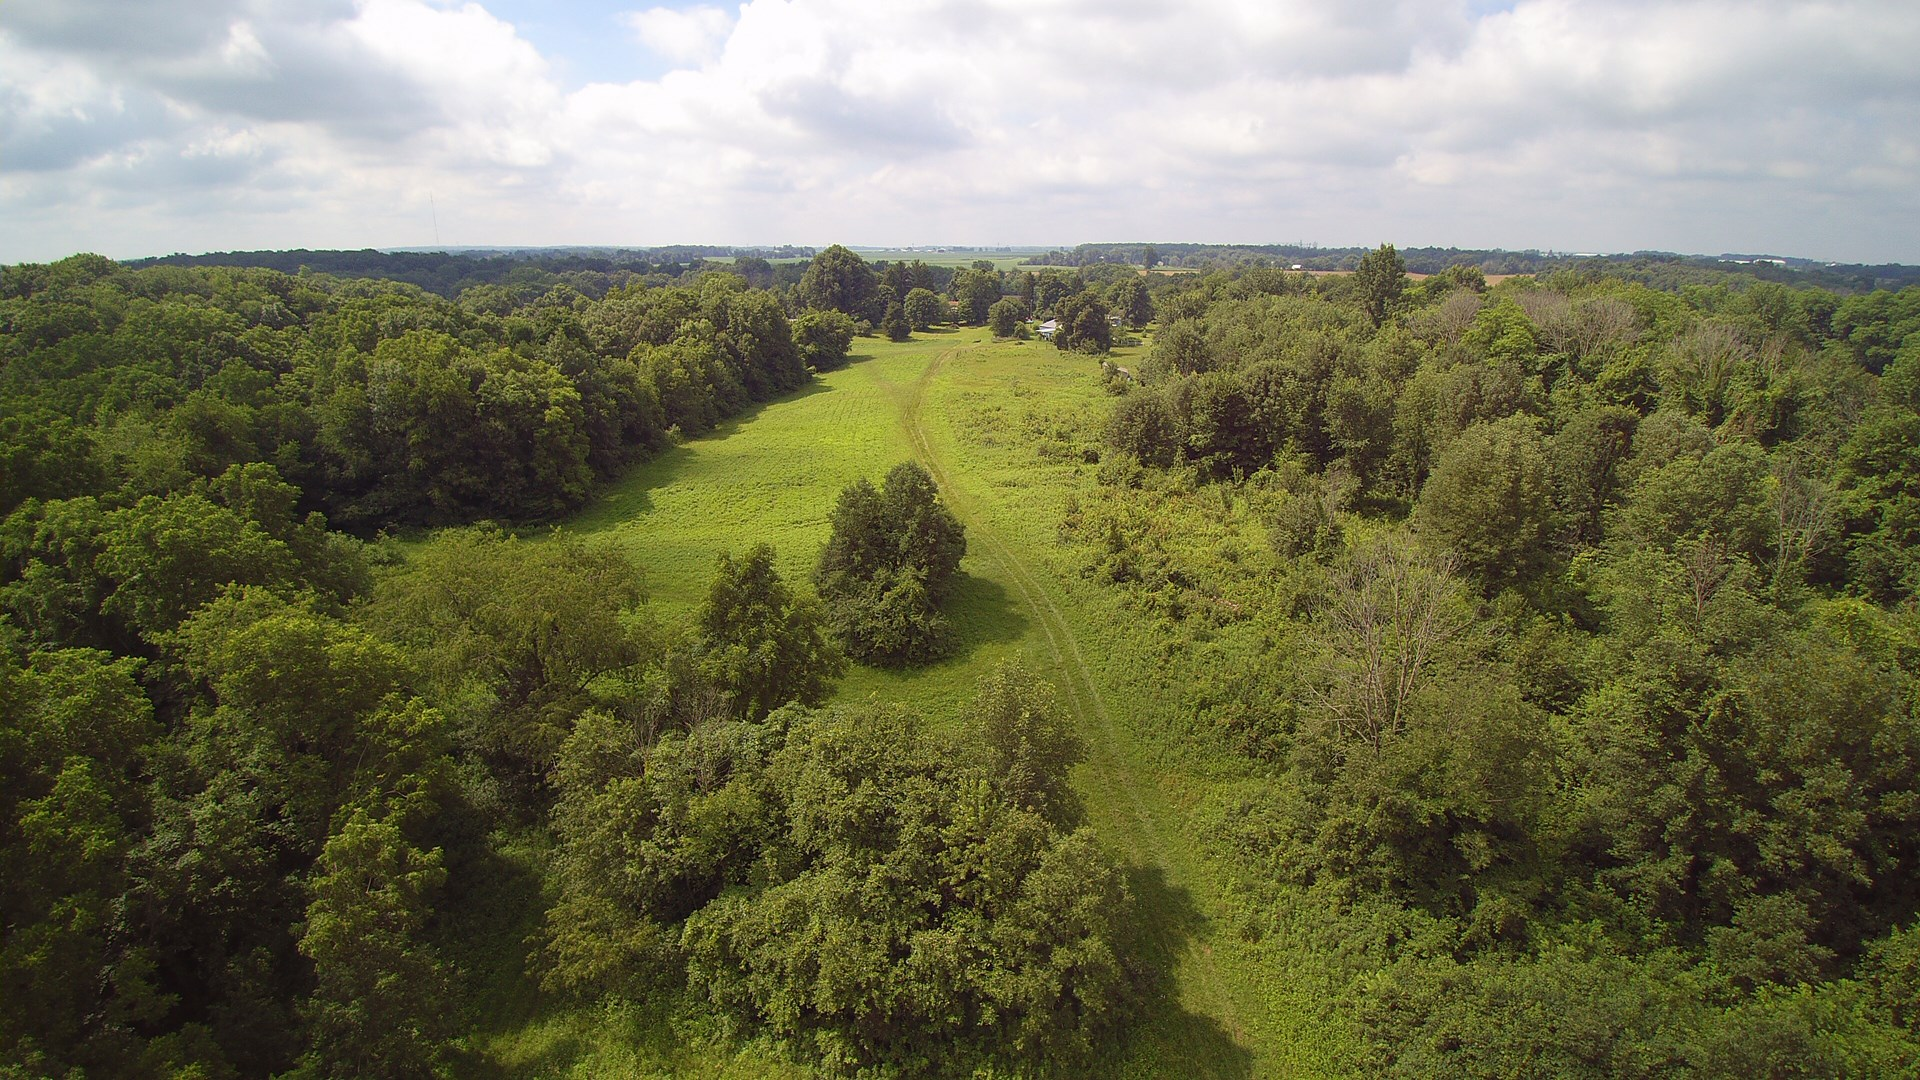 Recreational Ground 39.75 Acres near Croton, Ohio